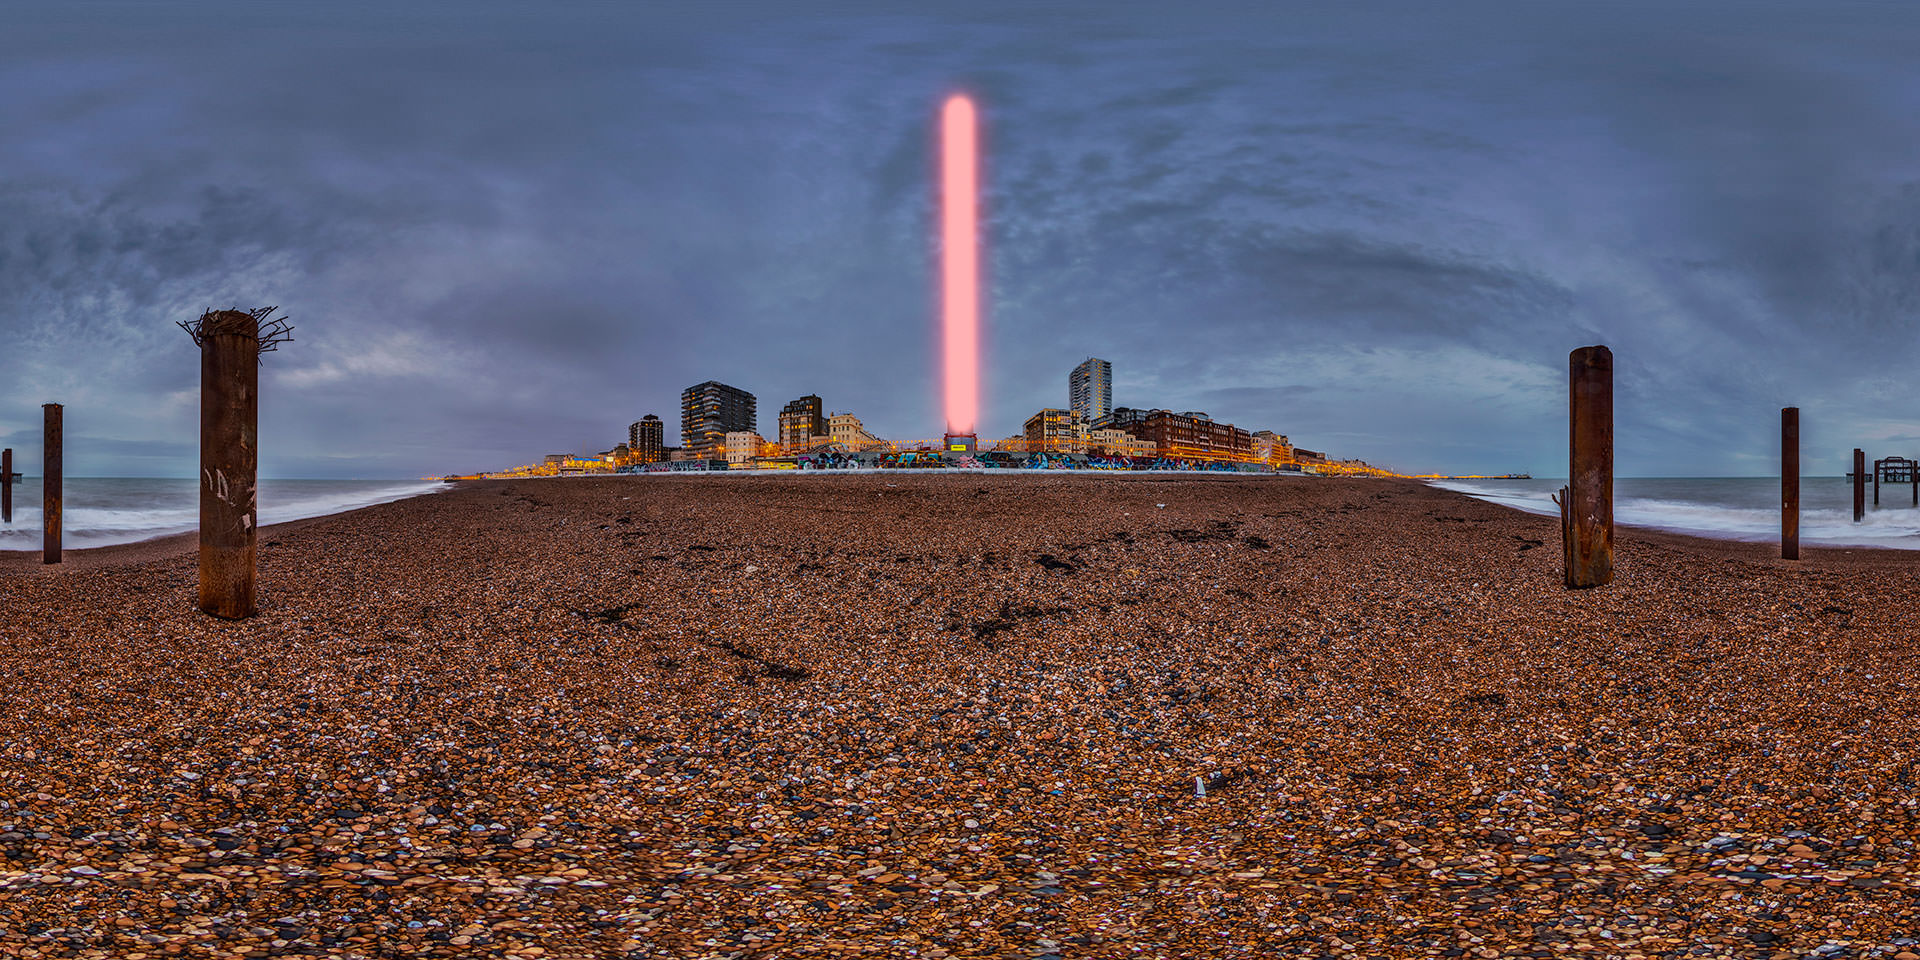 Brighton i360 is secretly giant Star Wars Light-saber!